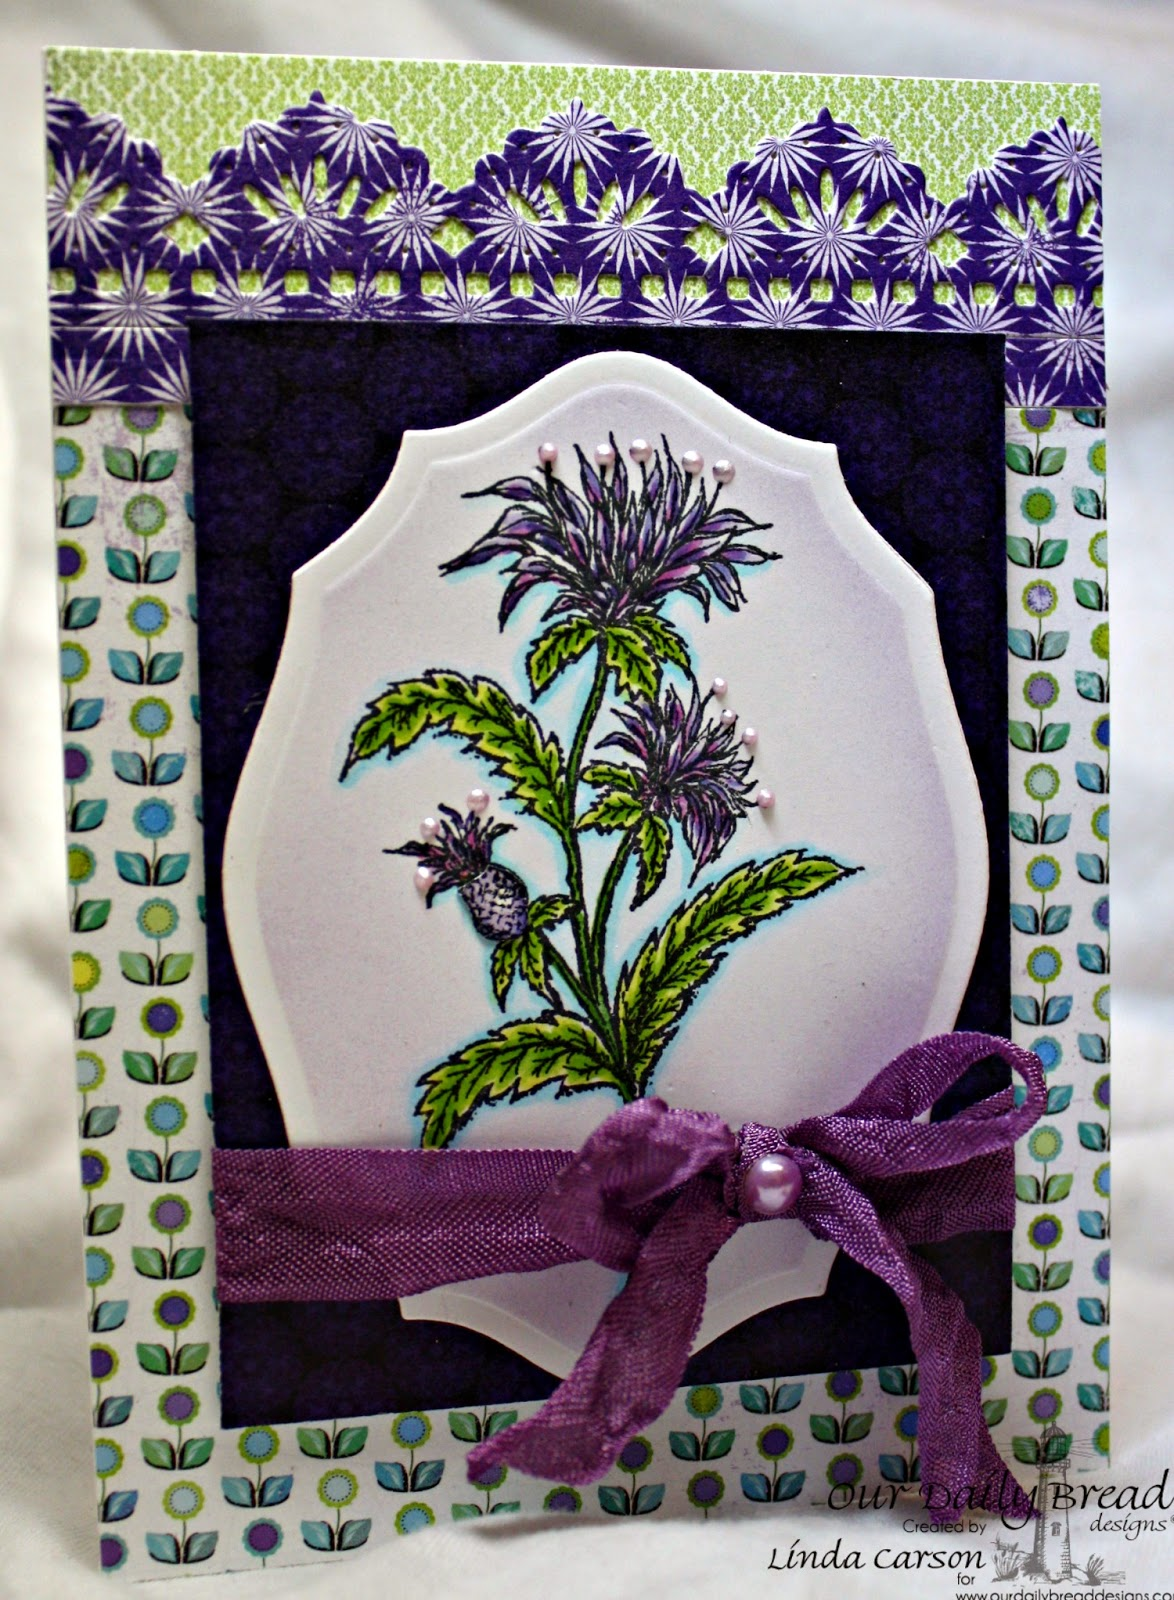 Our Daily Bread Designs, Bee Balm, Beautiful Borders dies, Elegant Oval Dies, designer Linda Carson